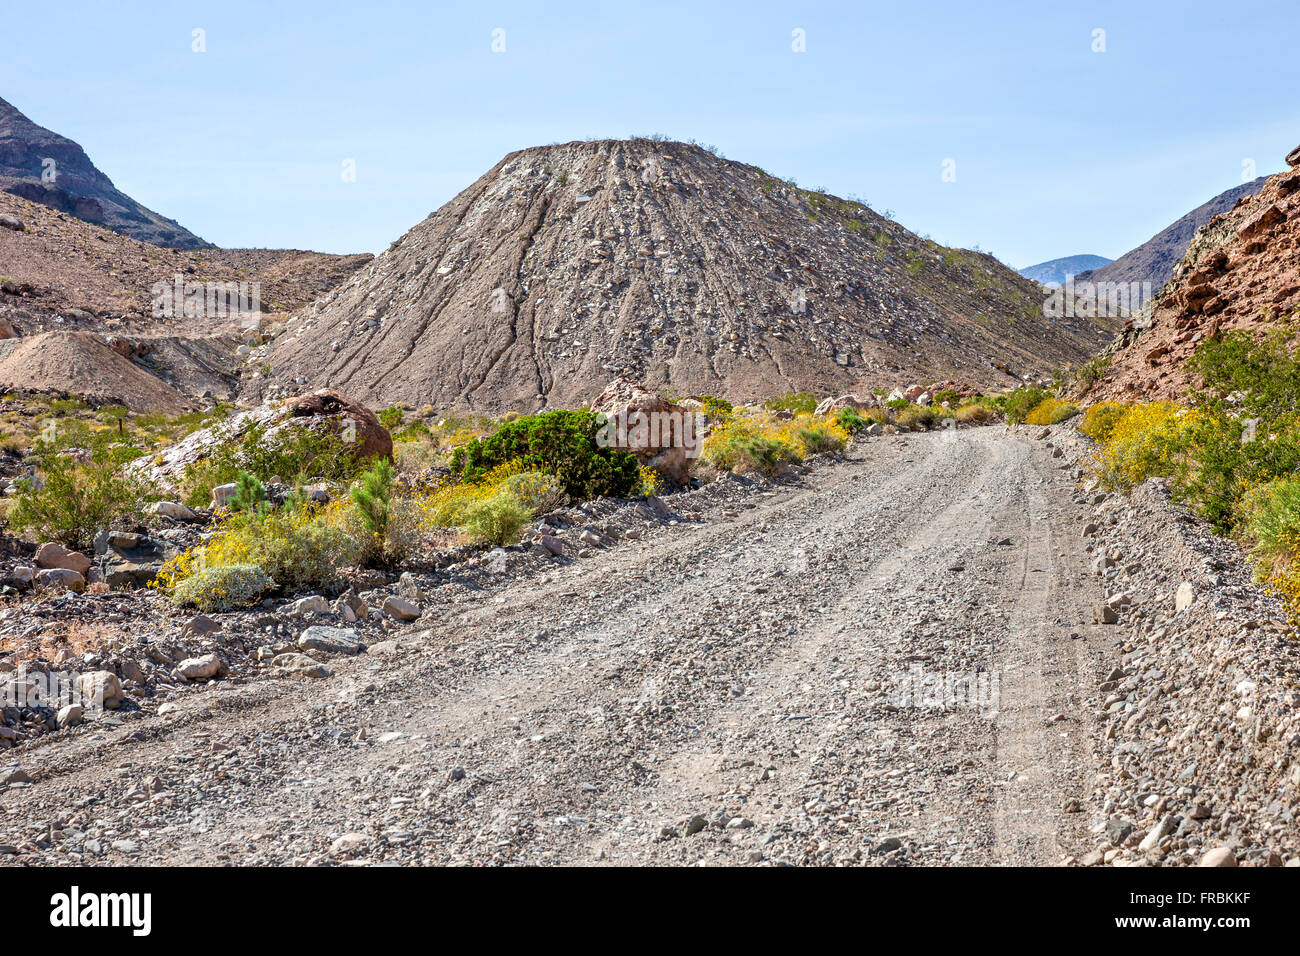 Ore debris accumulation next to Grantham Talc Mine site in Warm Springs Canyon, Death Valley National Park. - Stock Image